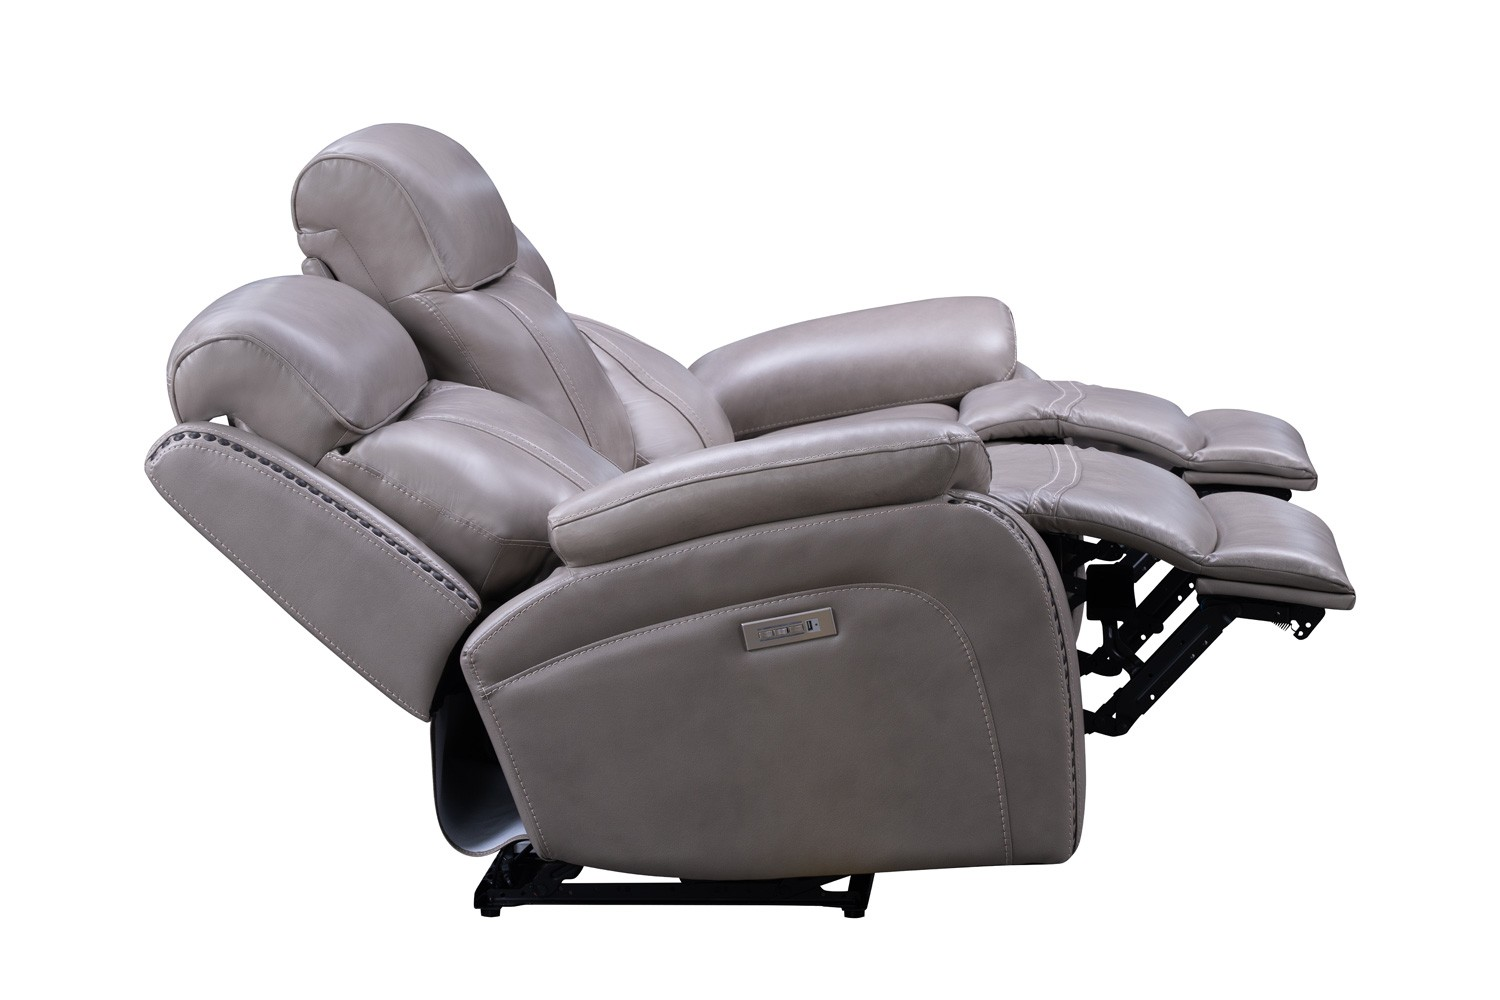 Barcalounger Sandover Power Reclining Sofa with Power Head Rests, Power Lumbar and Drop Down Table - Sergi Gray Beige/Leather Match